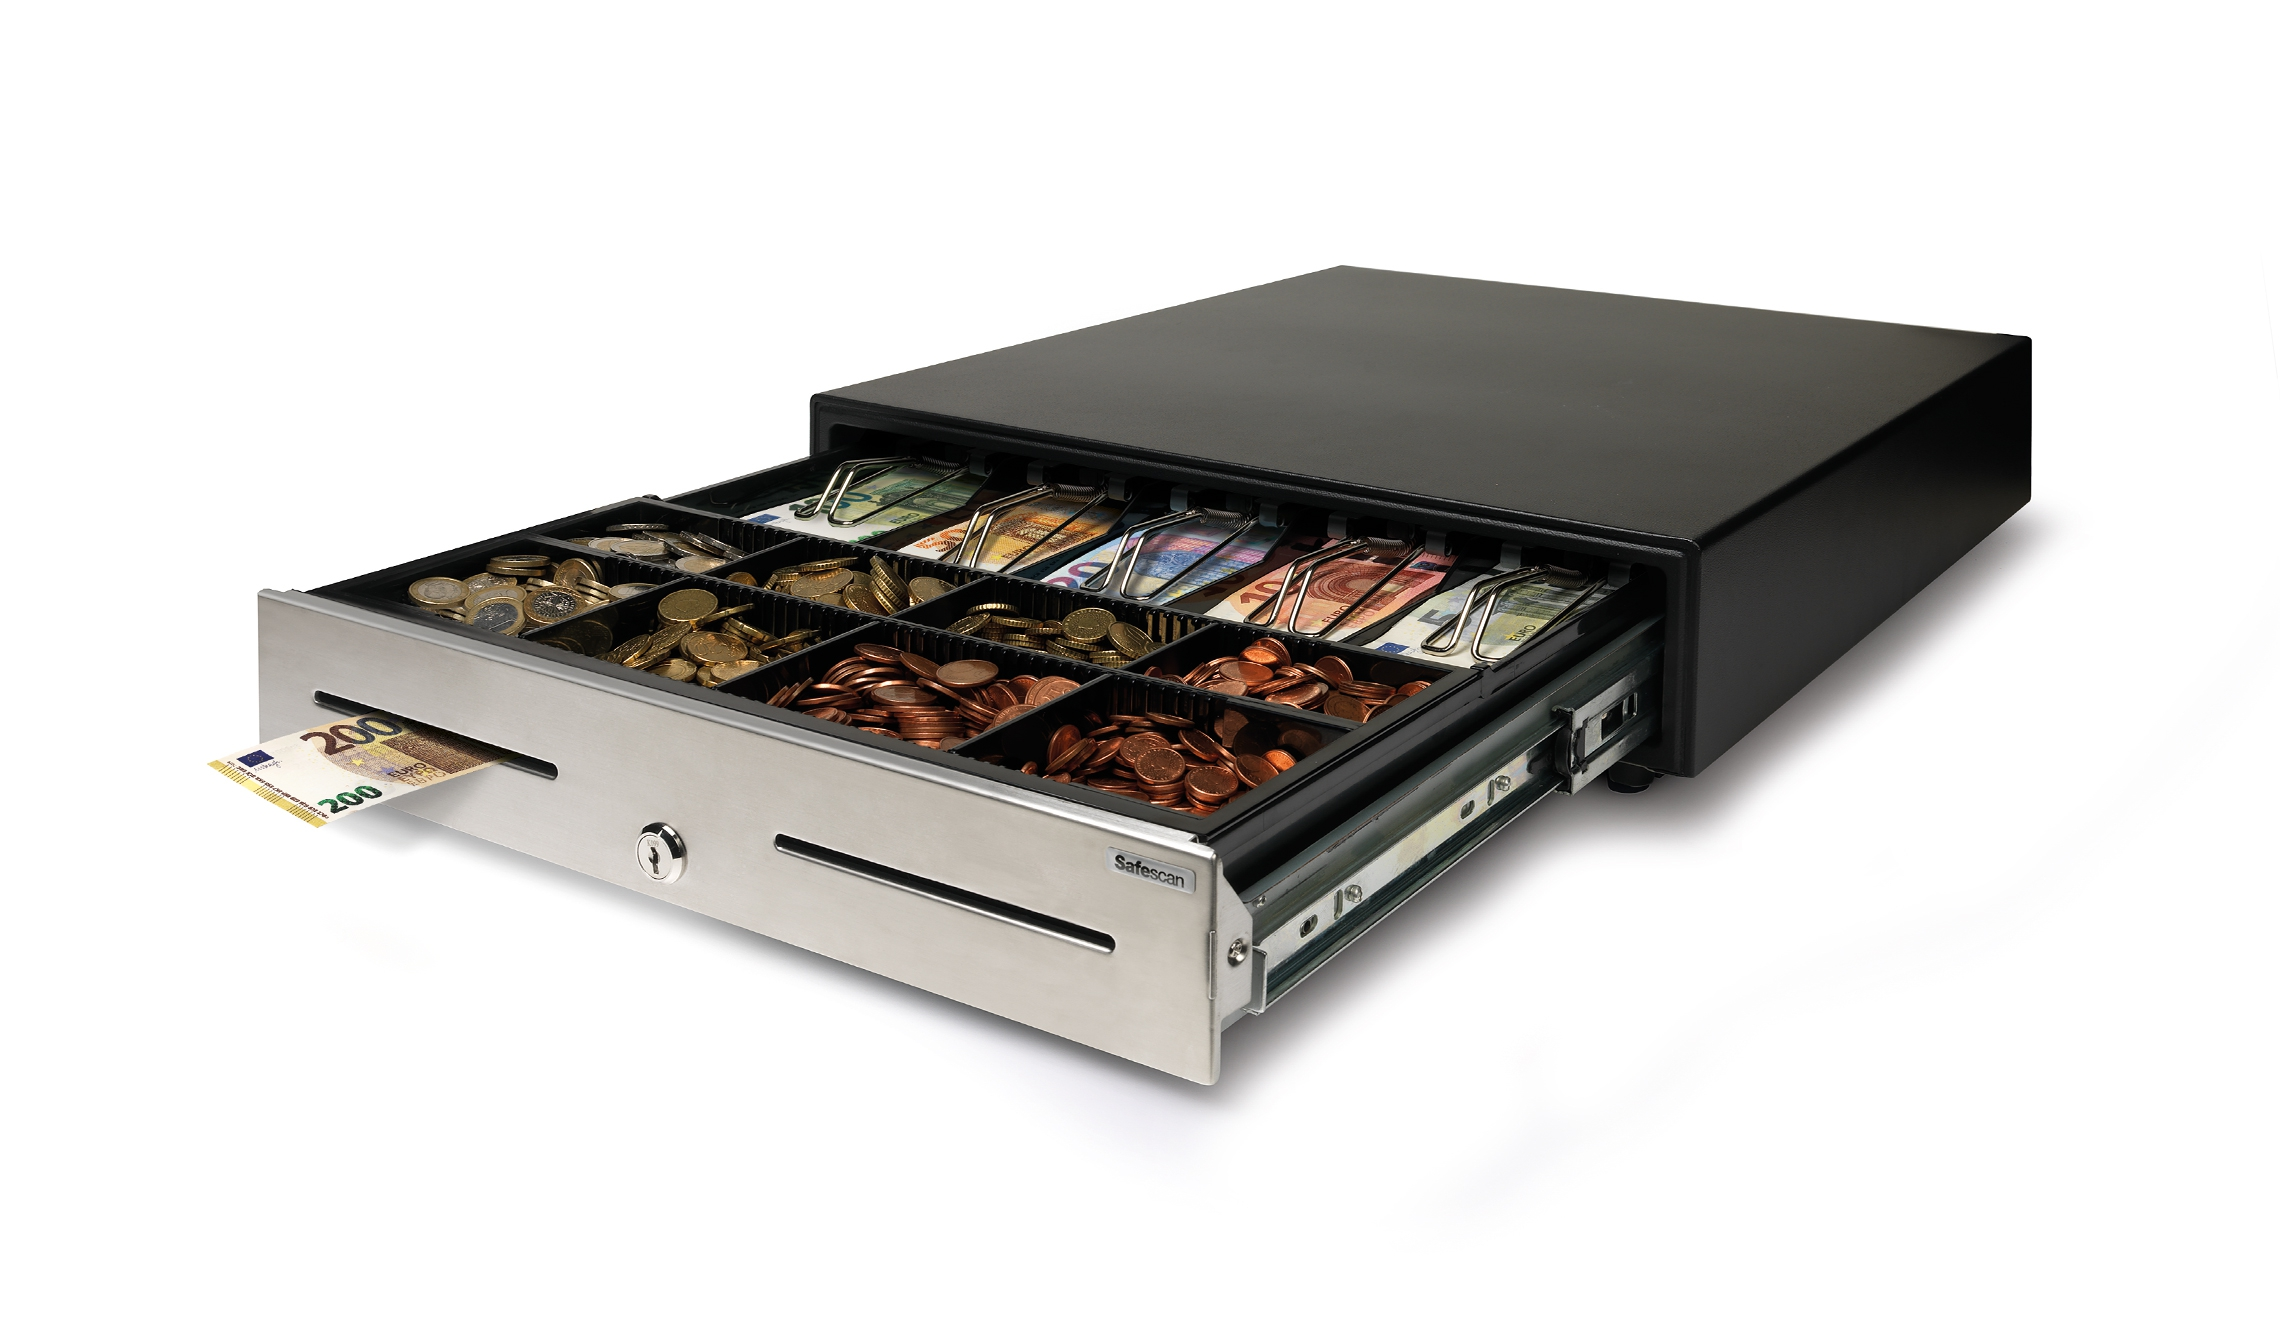 safescan-hd4646s-lay-out-kassalade